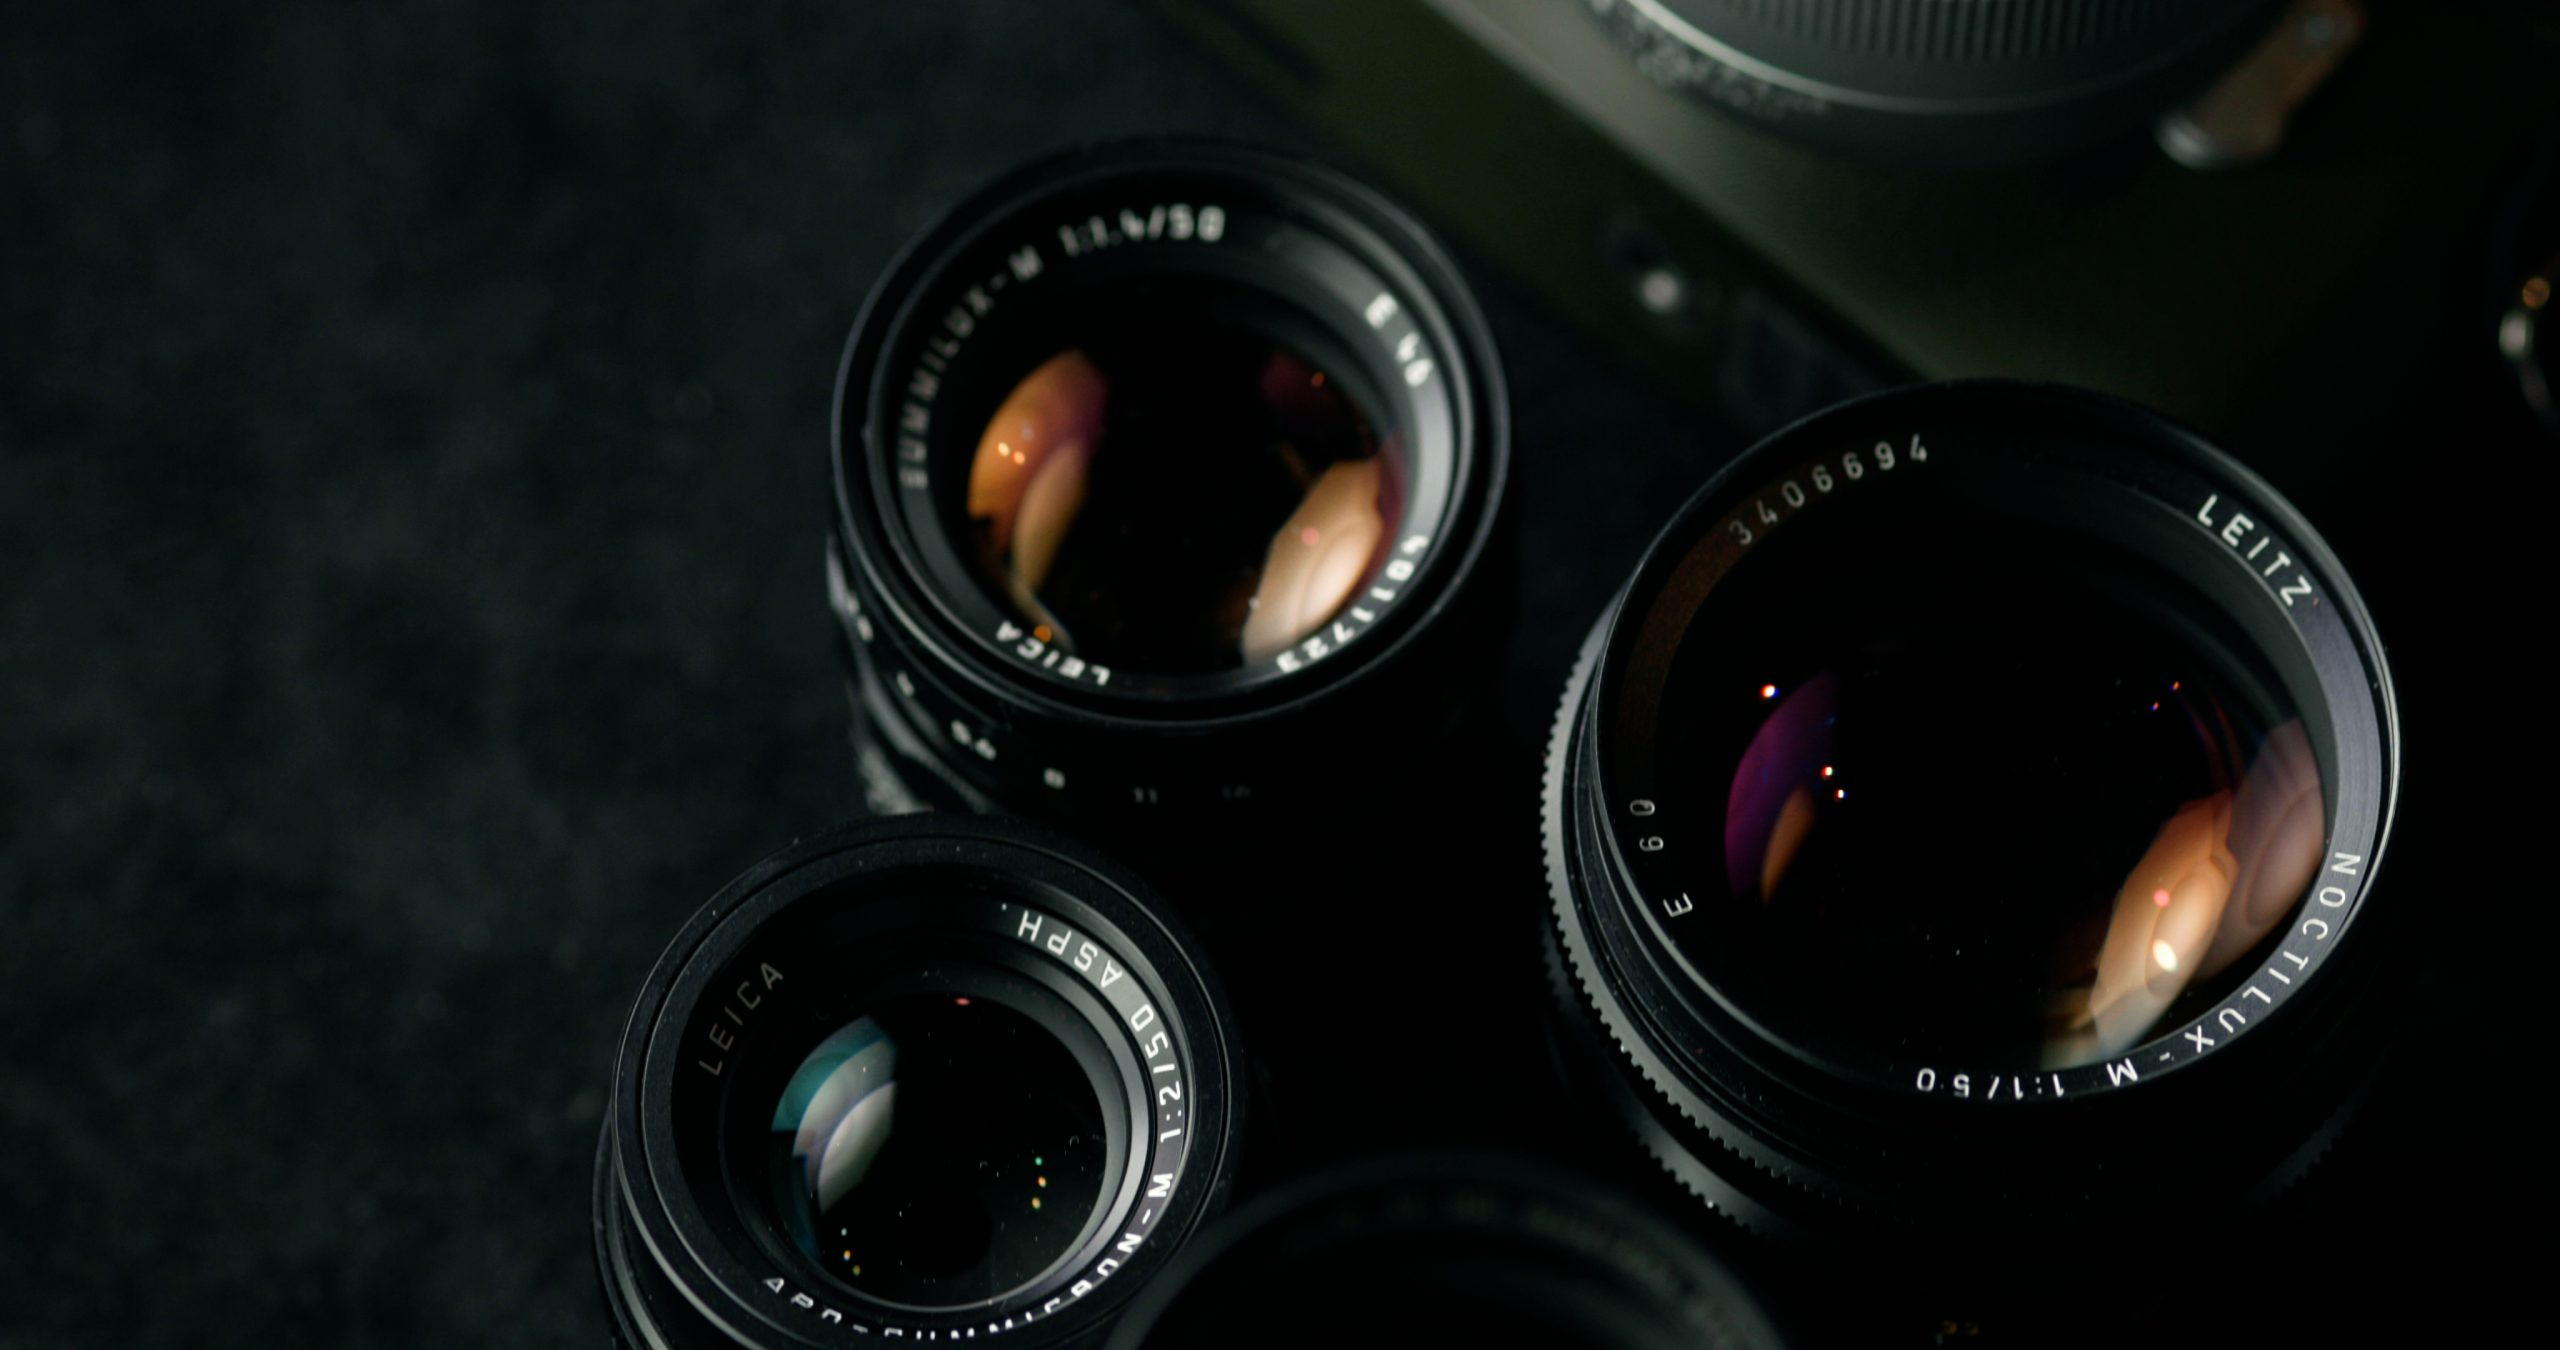 Leica 50mm Summicron 50mm f/2.0 Apo vs. Zeiss Sonnar 50mm f/1.5 - A Comparison Review